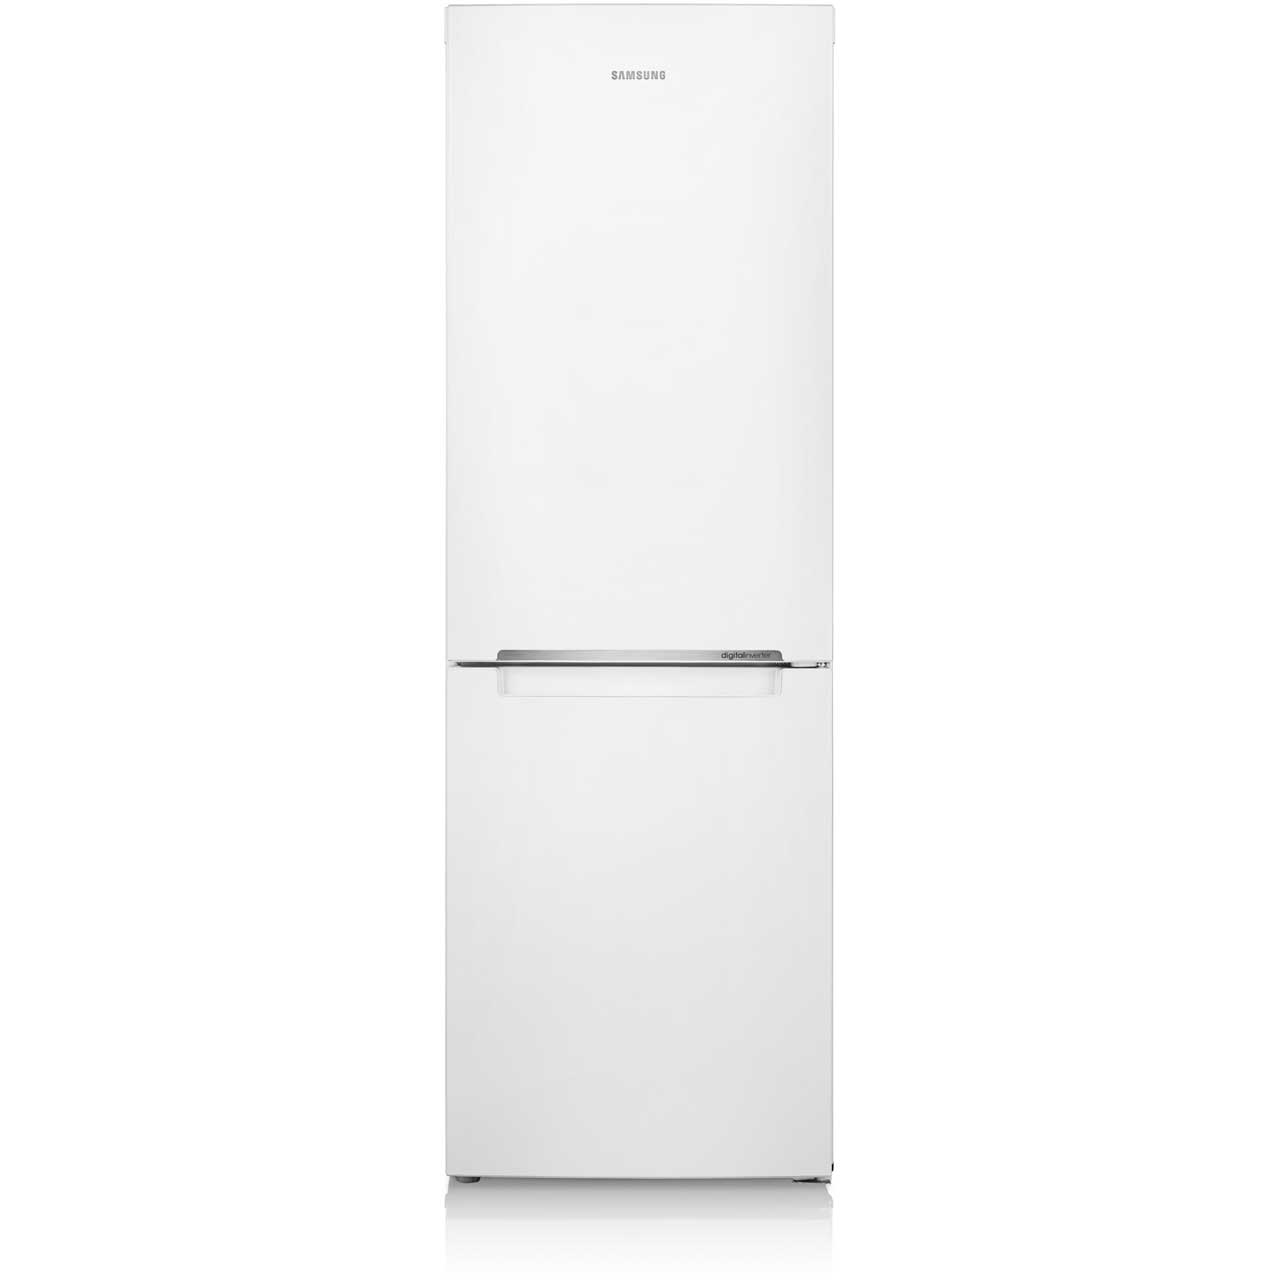 Samsung RB Combi Range RB29FSRNDWW Free Standing Fridge Freezer Frost Free in White